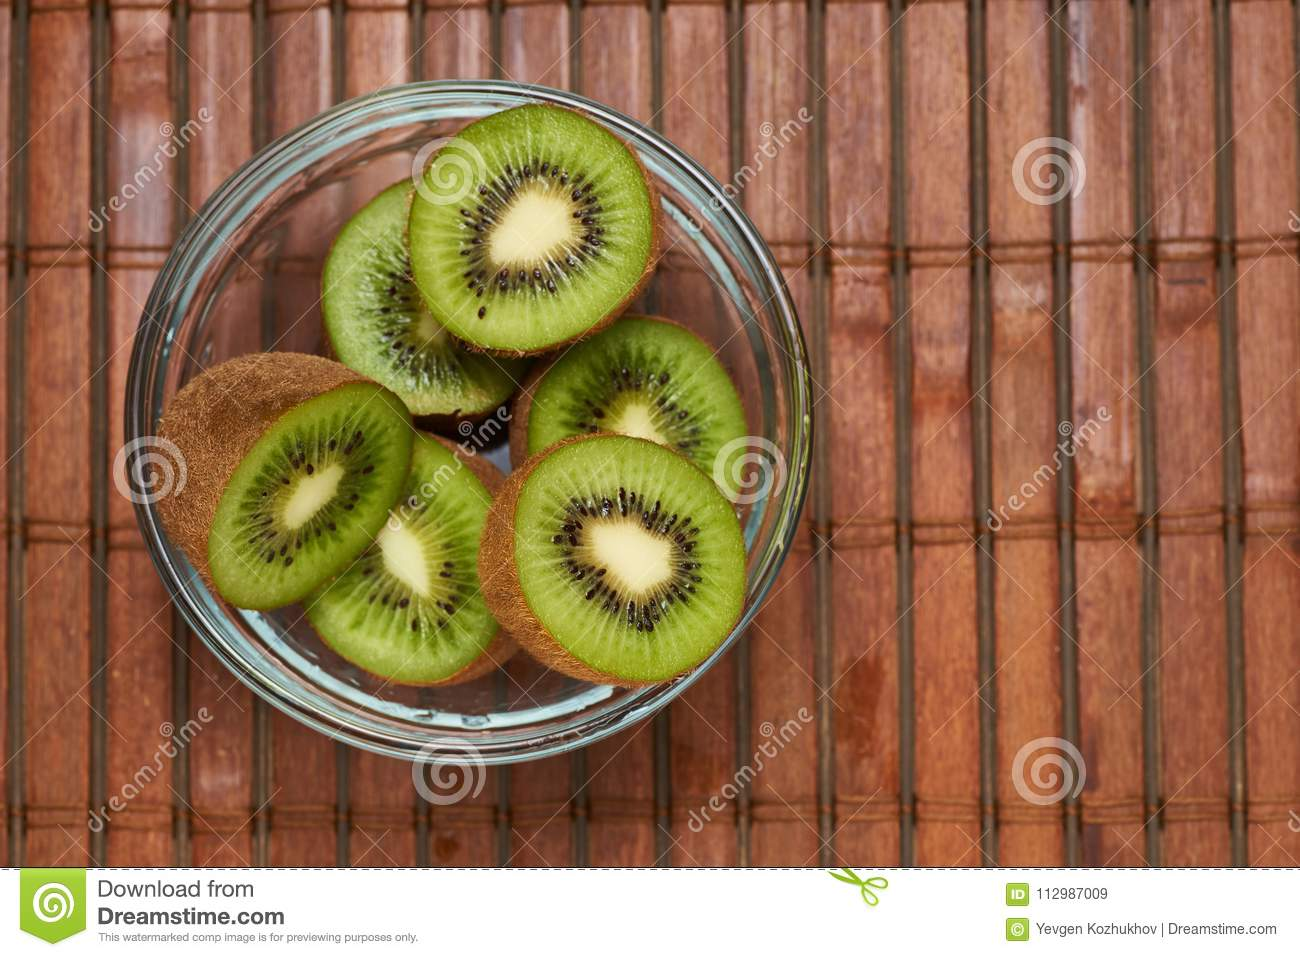 Kiwi in a glass plate on a bamboo background